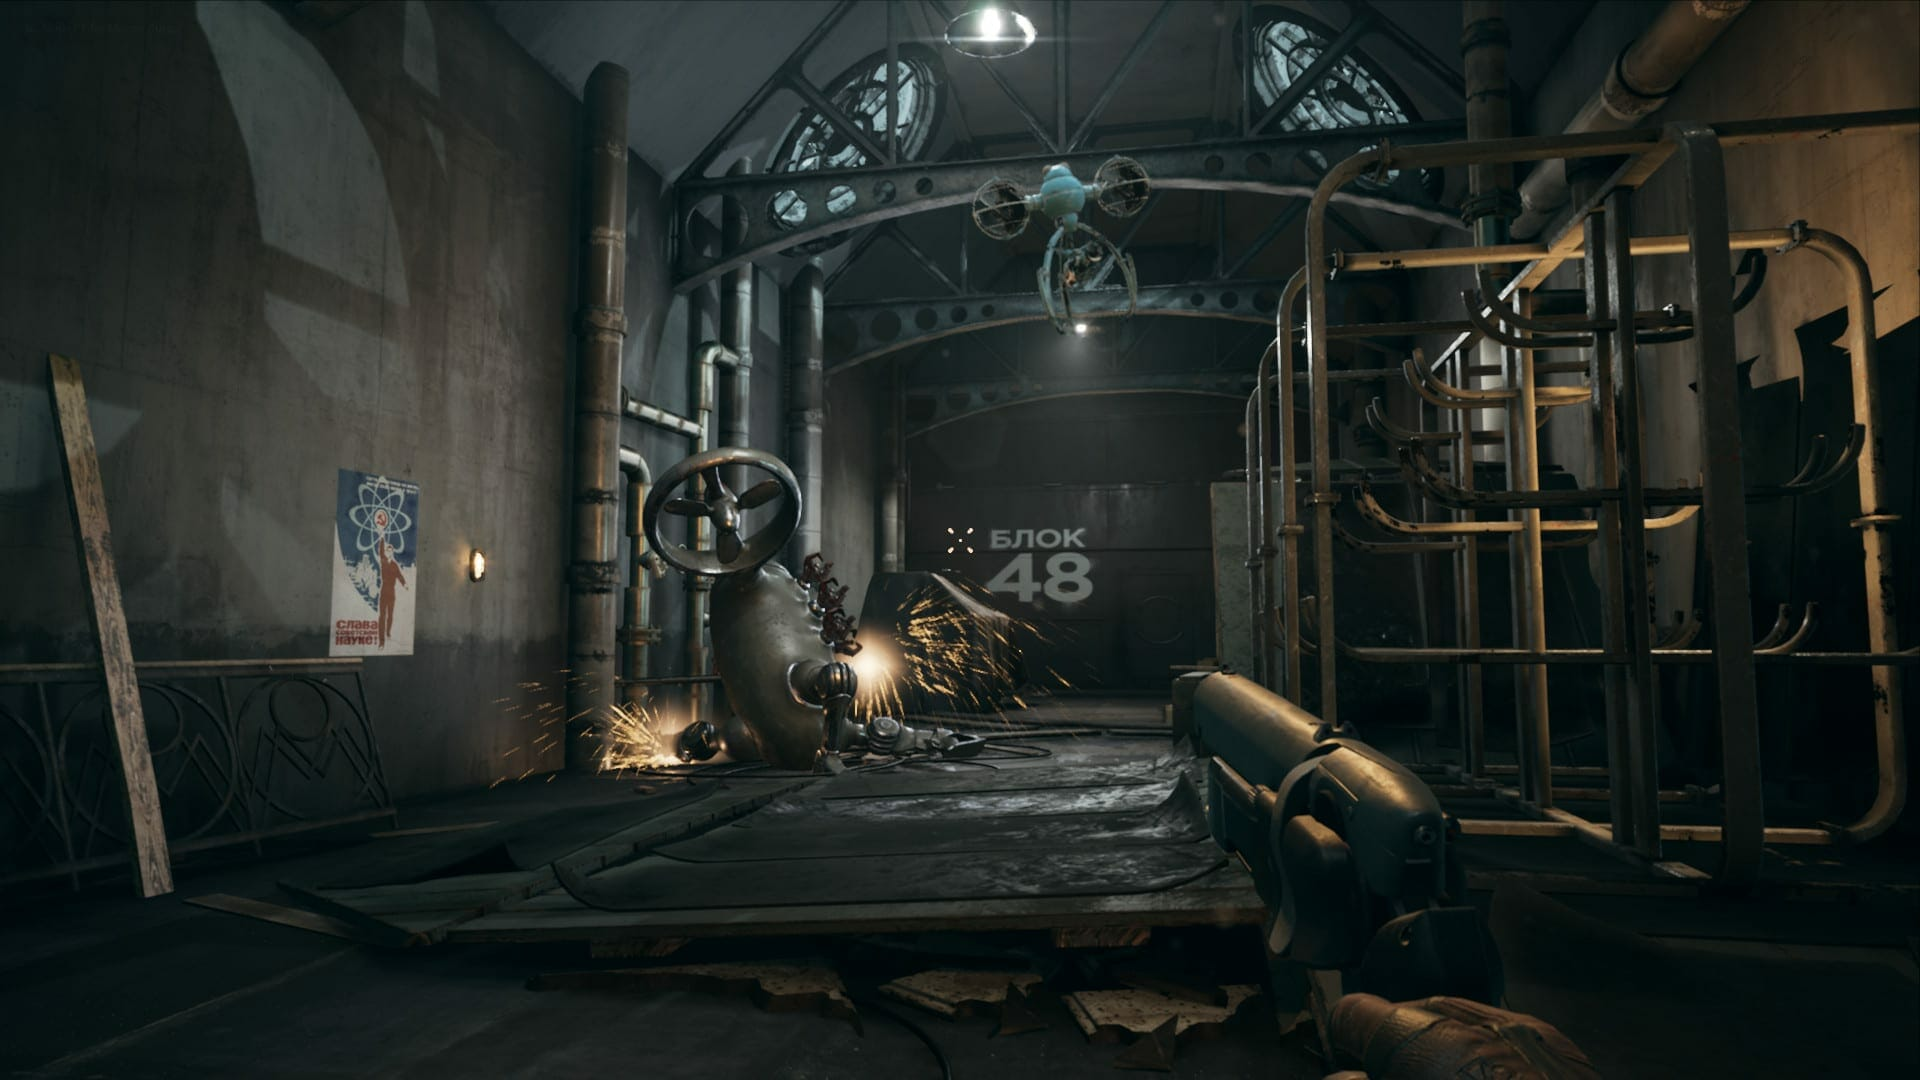 WATCH Stunning Trailer for New Russian Videogame Atomic Heart